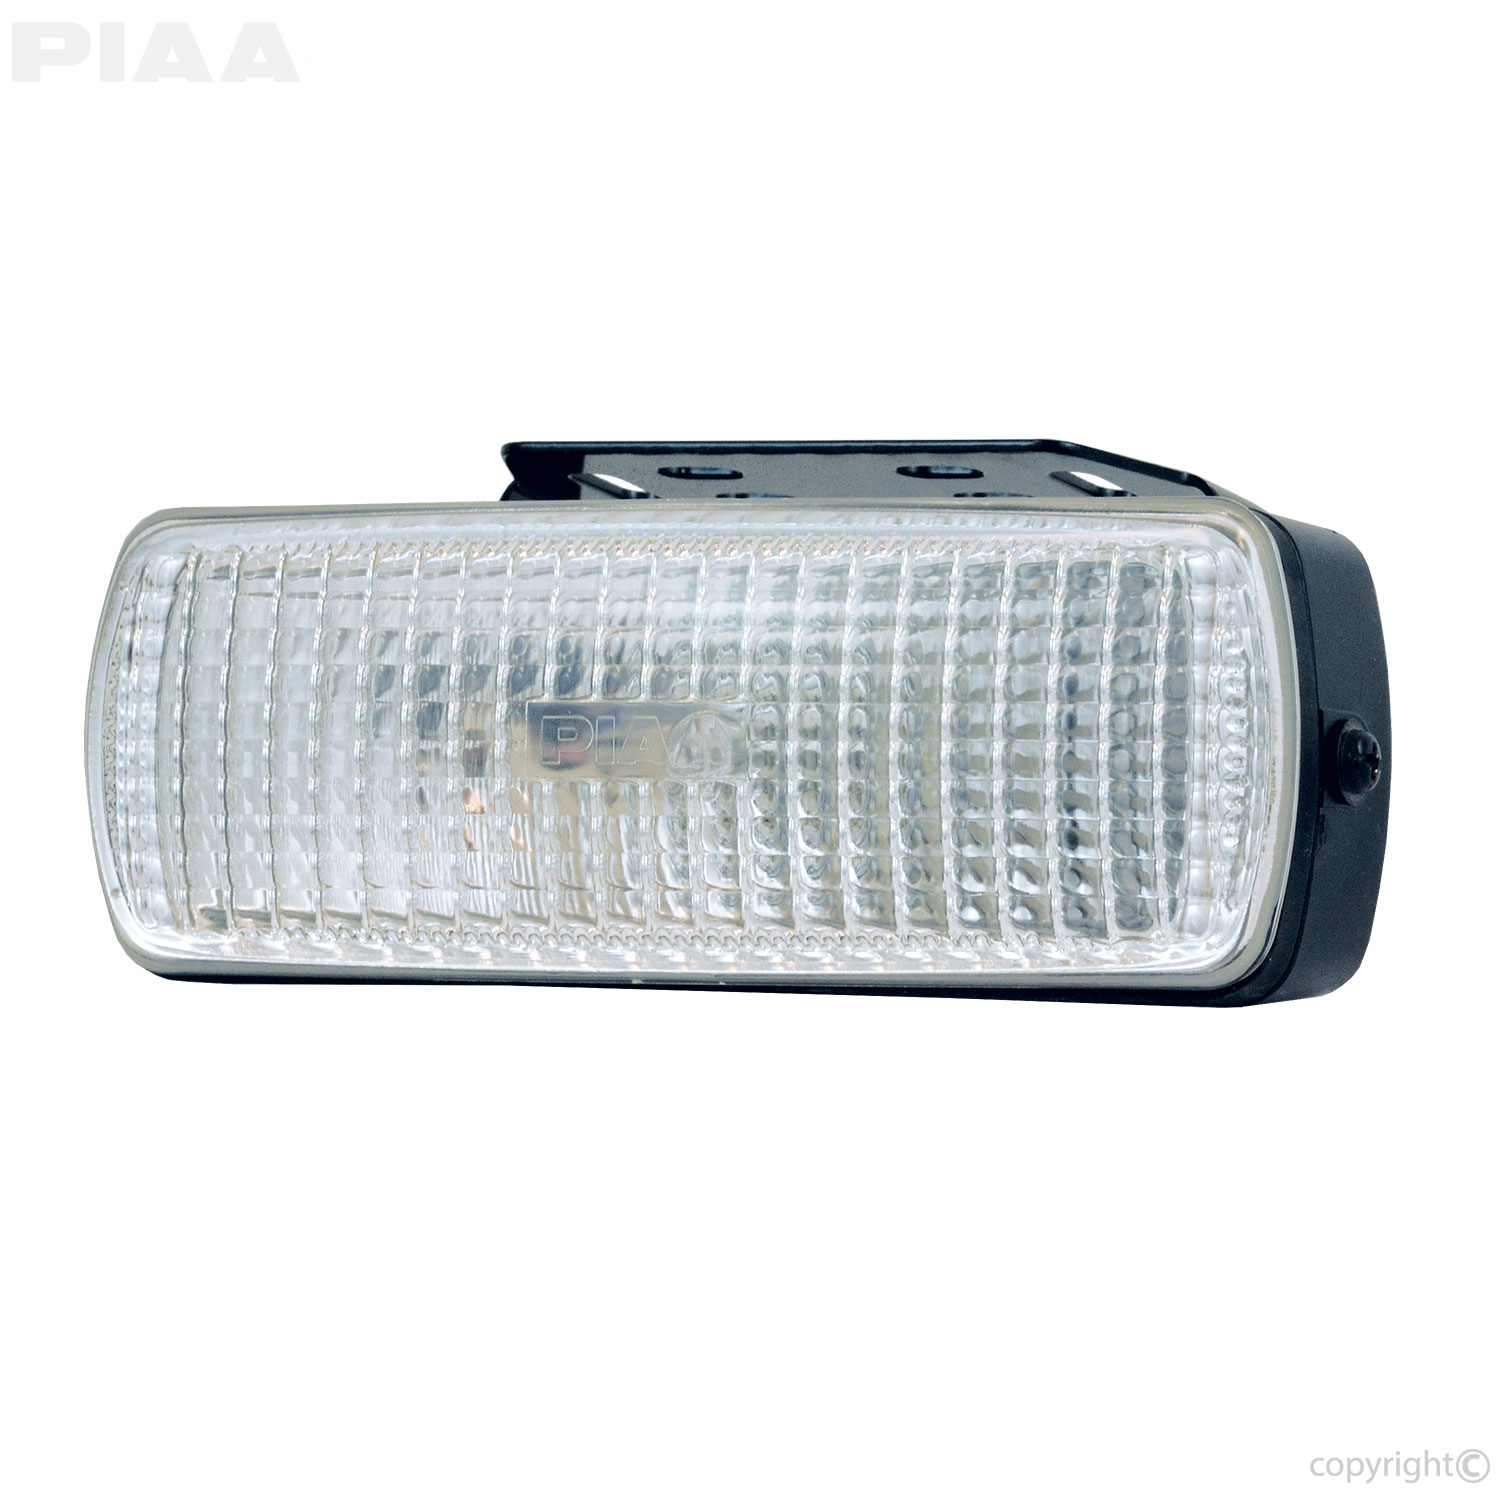 PIAA 1500 Backup Light